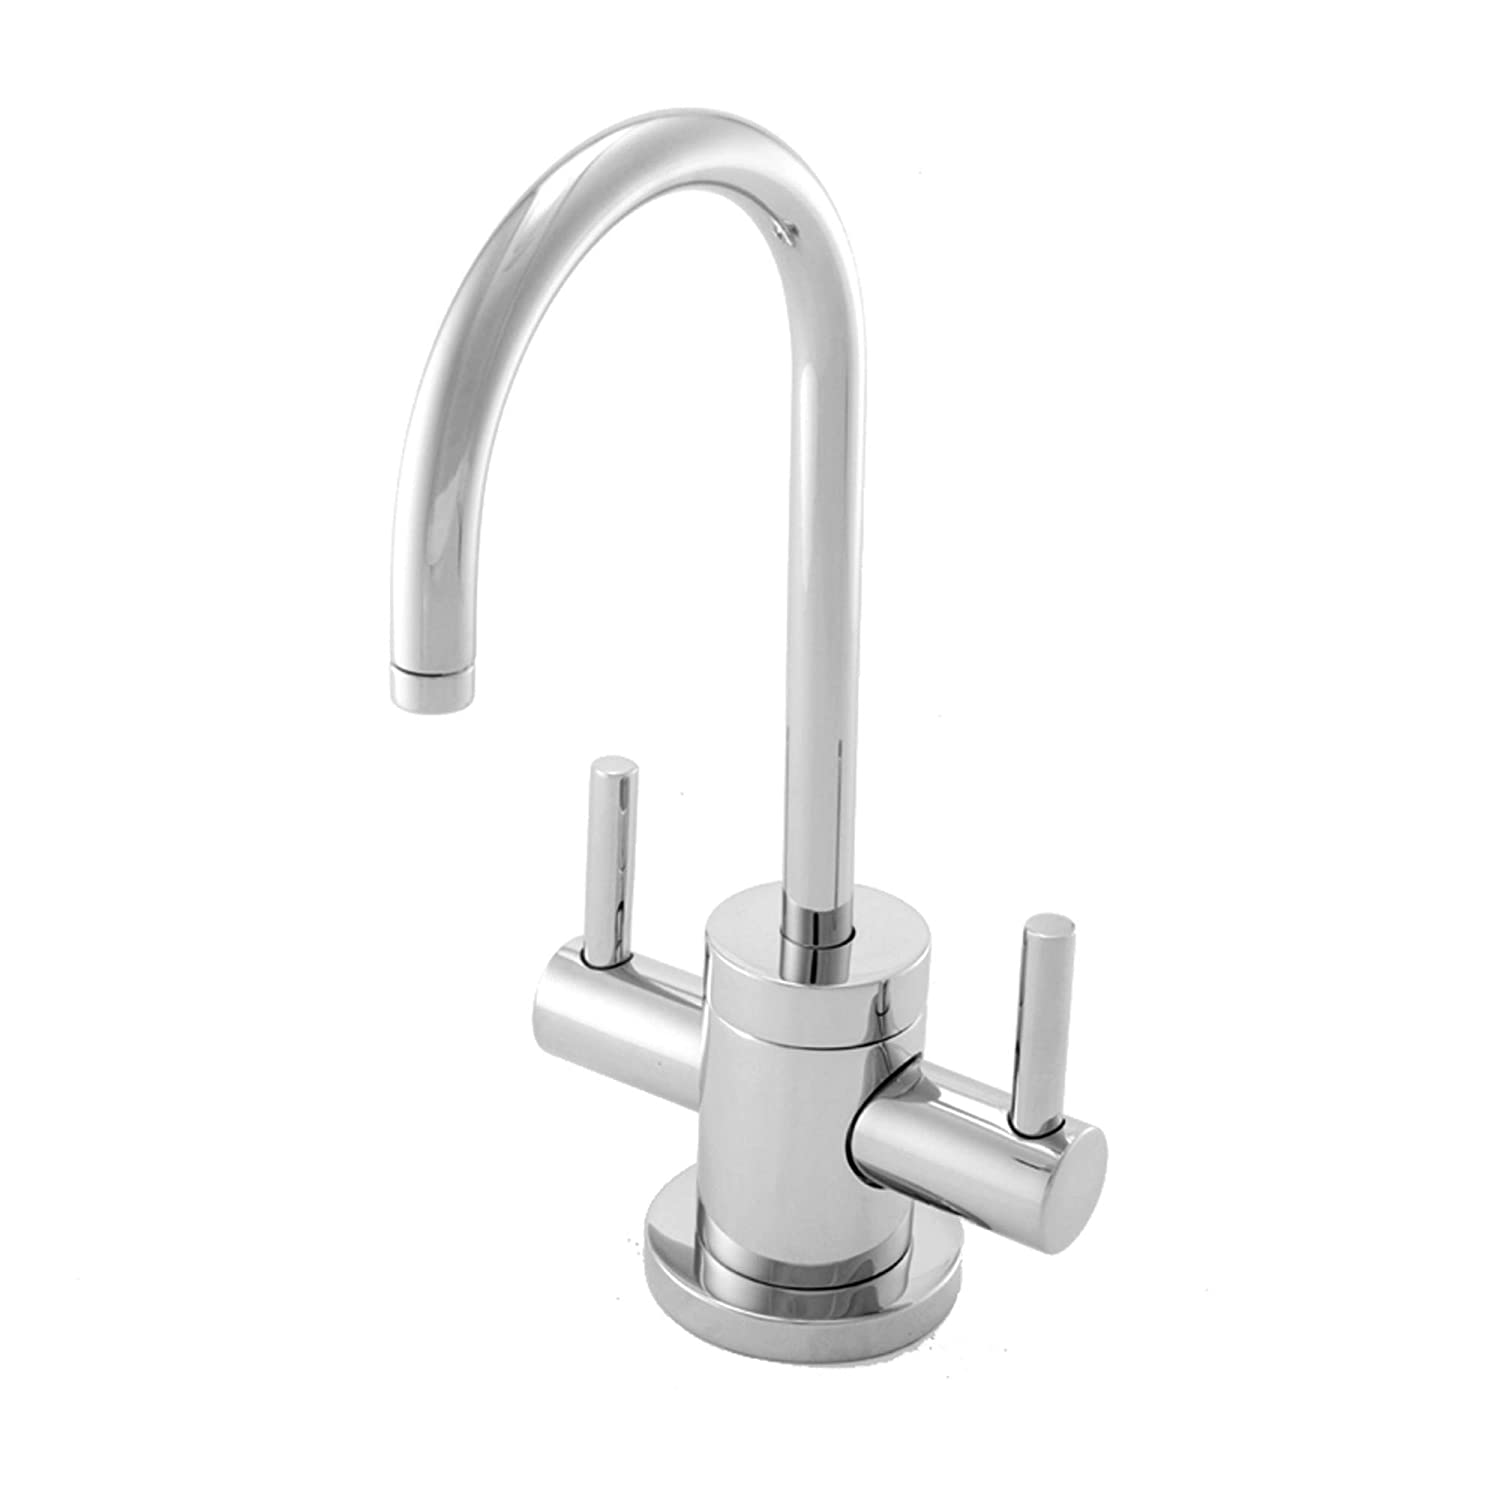 Newport Brass 106 Double Handle Hot/Cold Water Dispenser from the East Linear, Polished Chrome